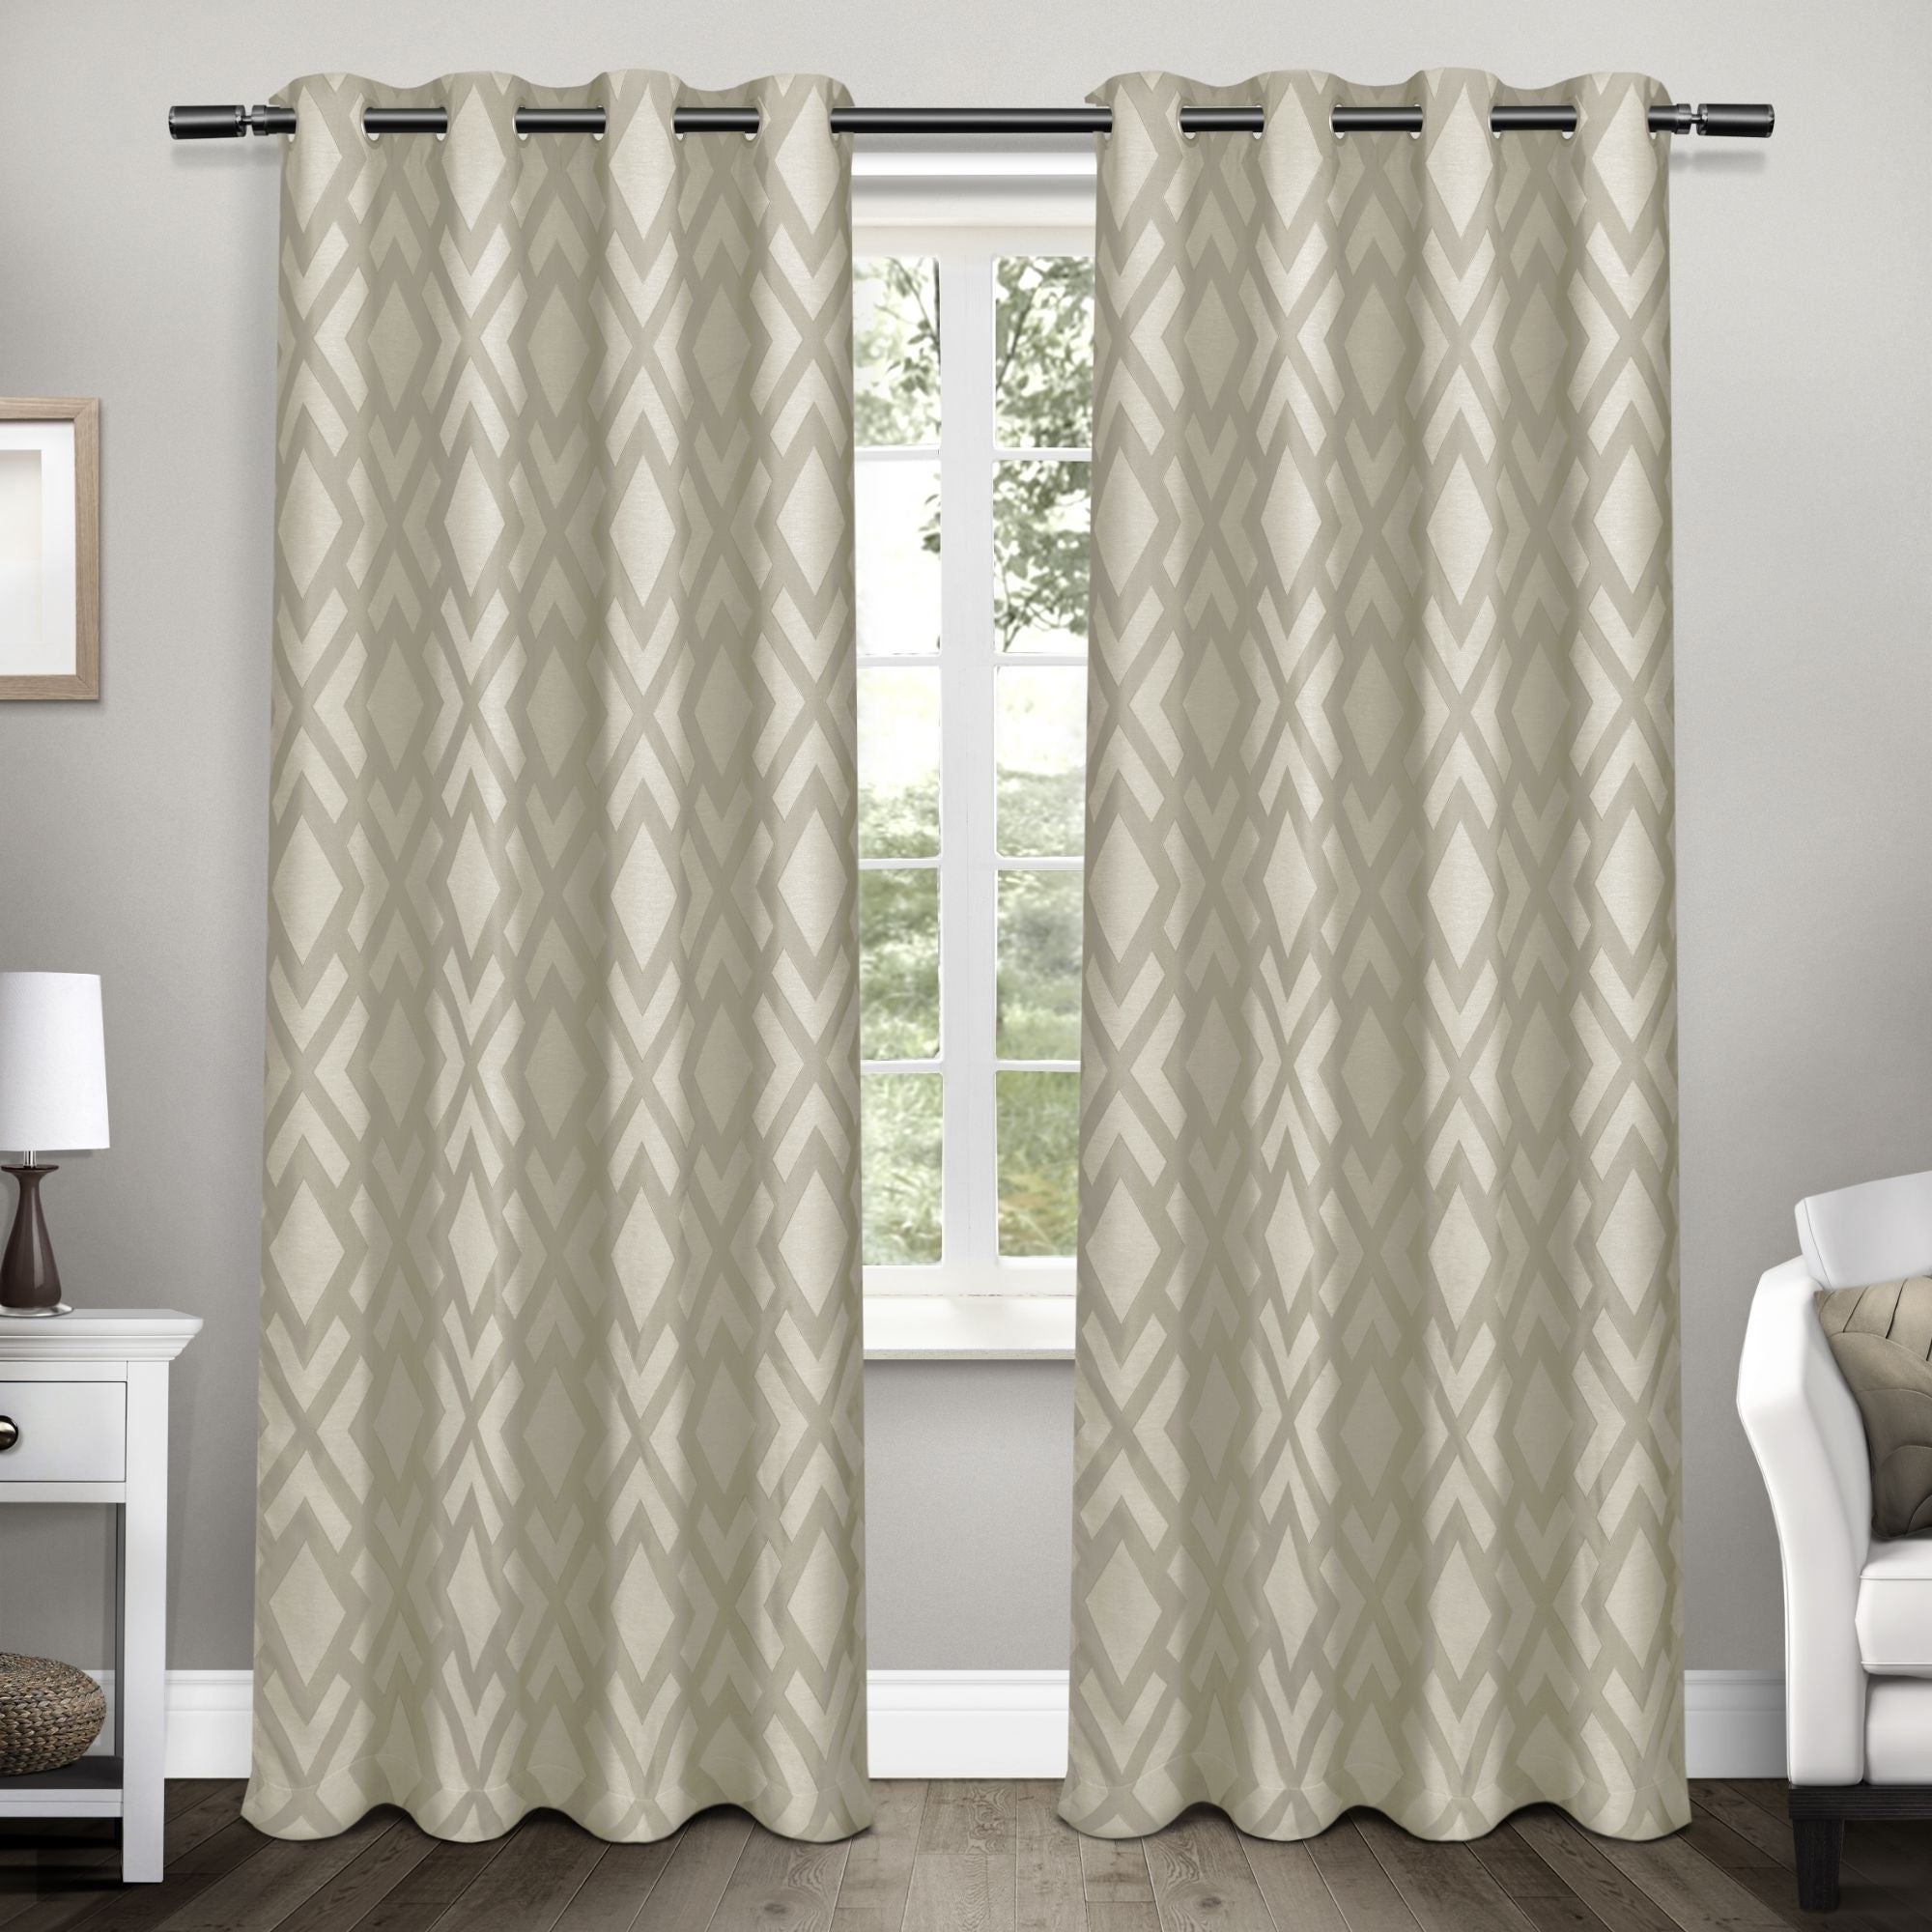 Well Known Easton Thermal Woven Blackout Grommet Top Curtain Panel Pairs In Ati Home Easton Thermal Woven Blackout Grommet Top Curtain Panel Pair (View 2 of 20)